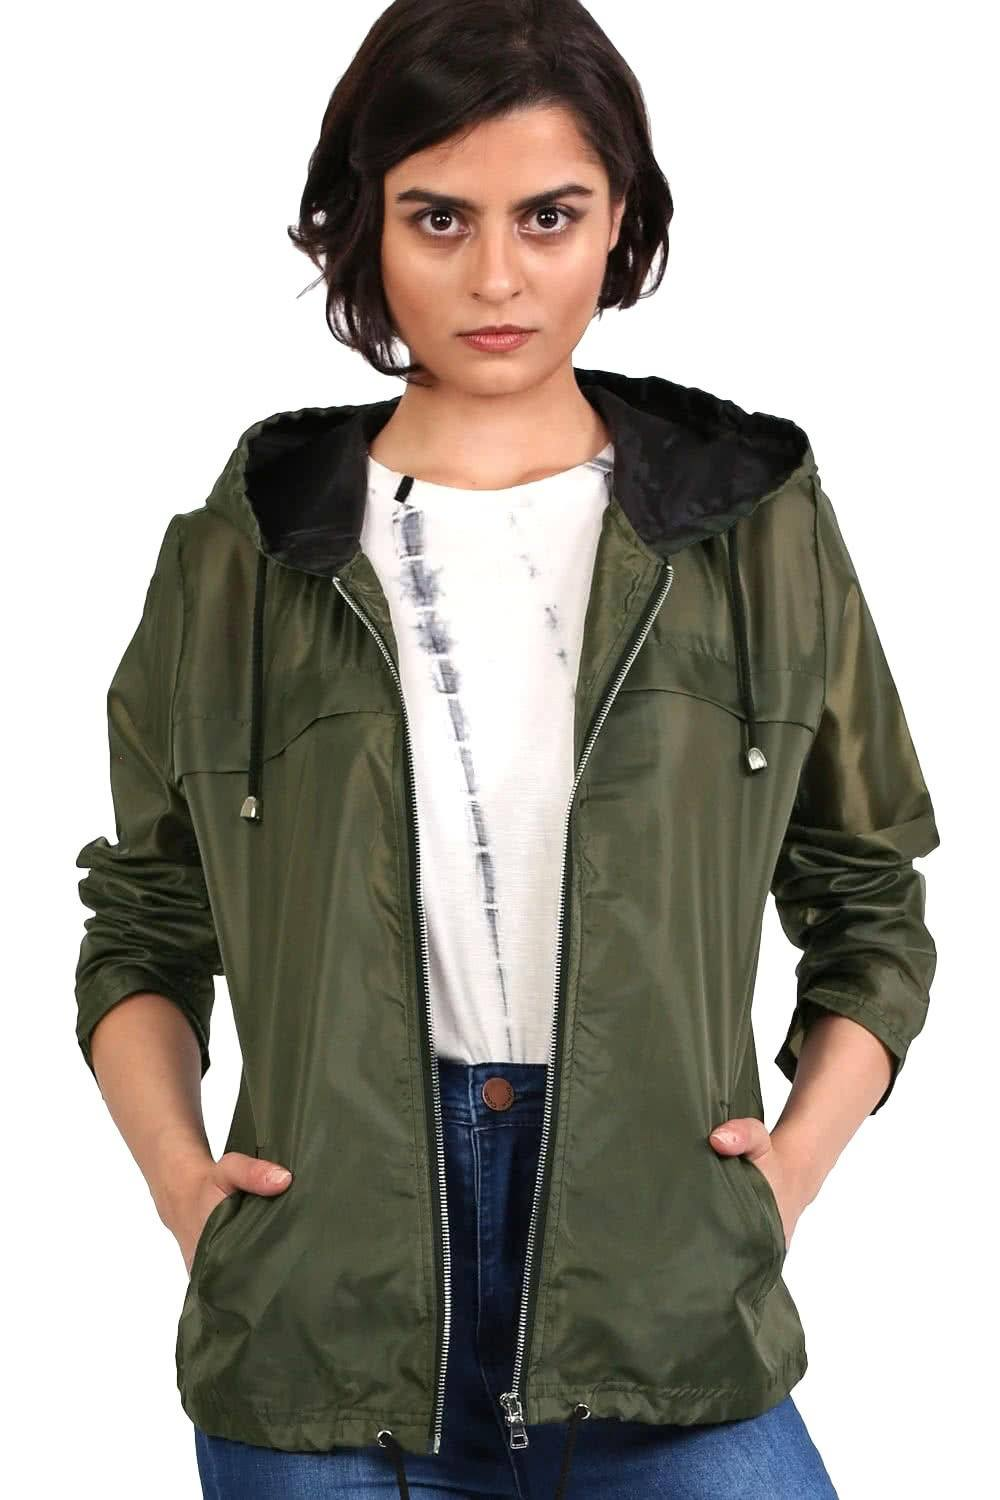 Jackets - Lightweight Hooded Festival Jacket In Khaki Green